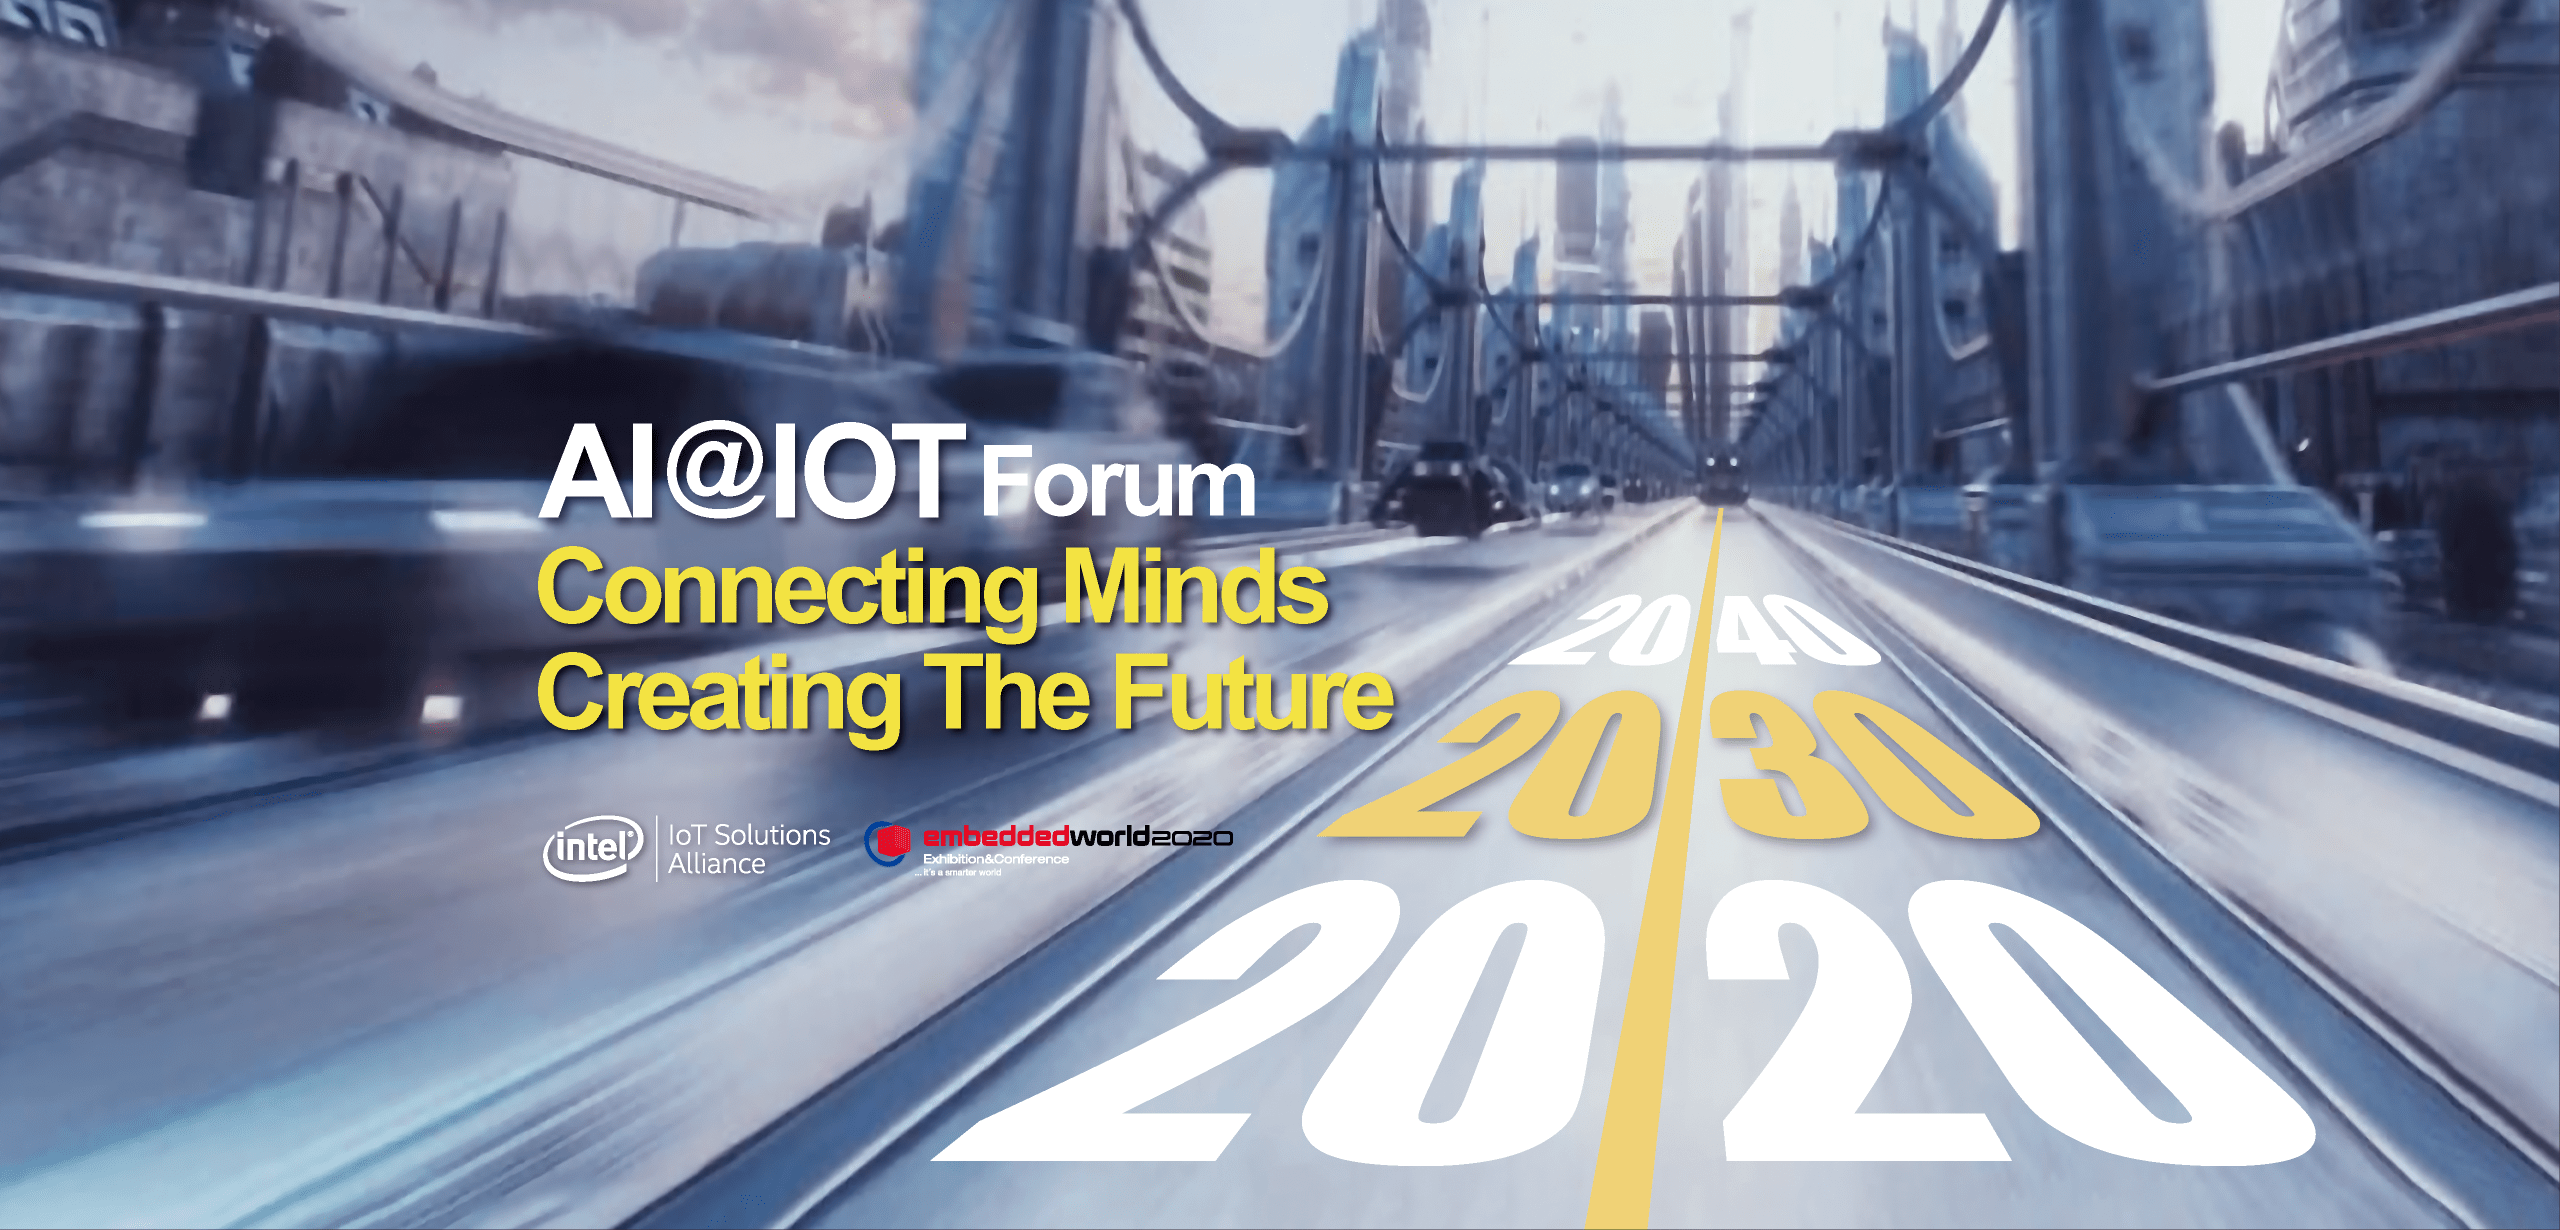 AI@IOT Forum -- Embedded World 2020